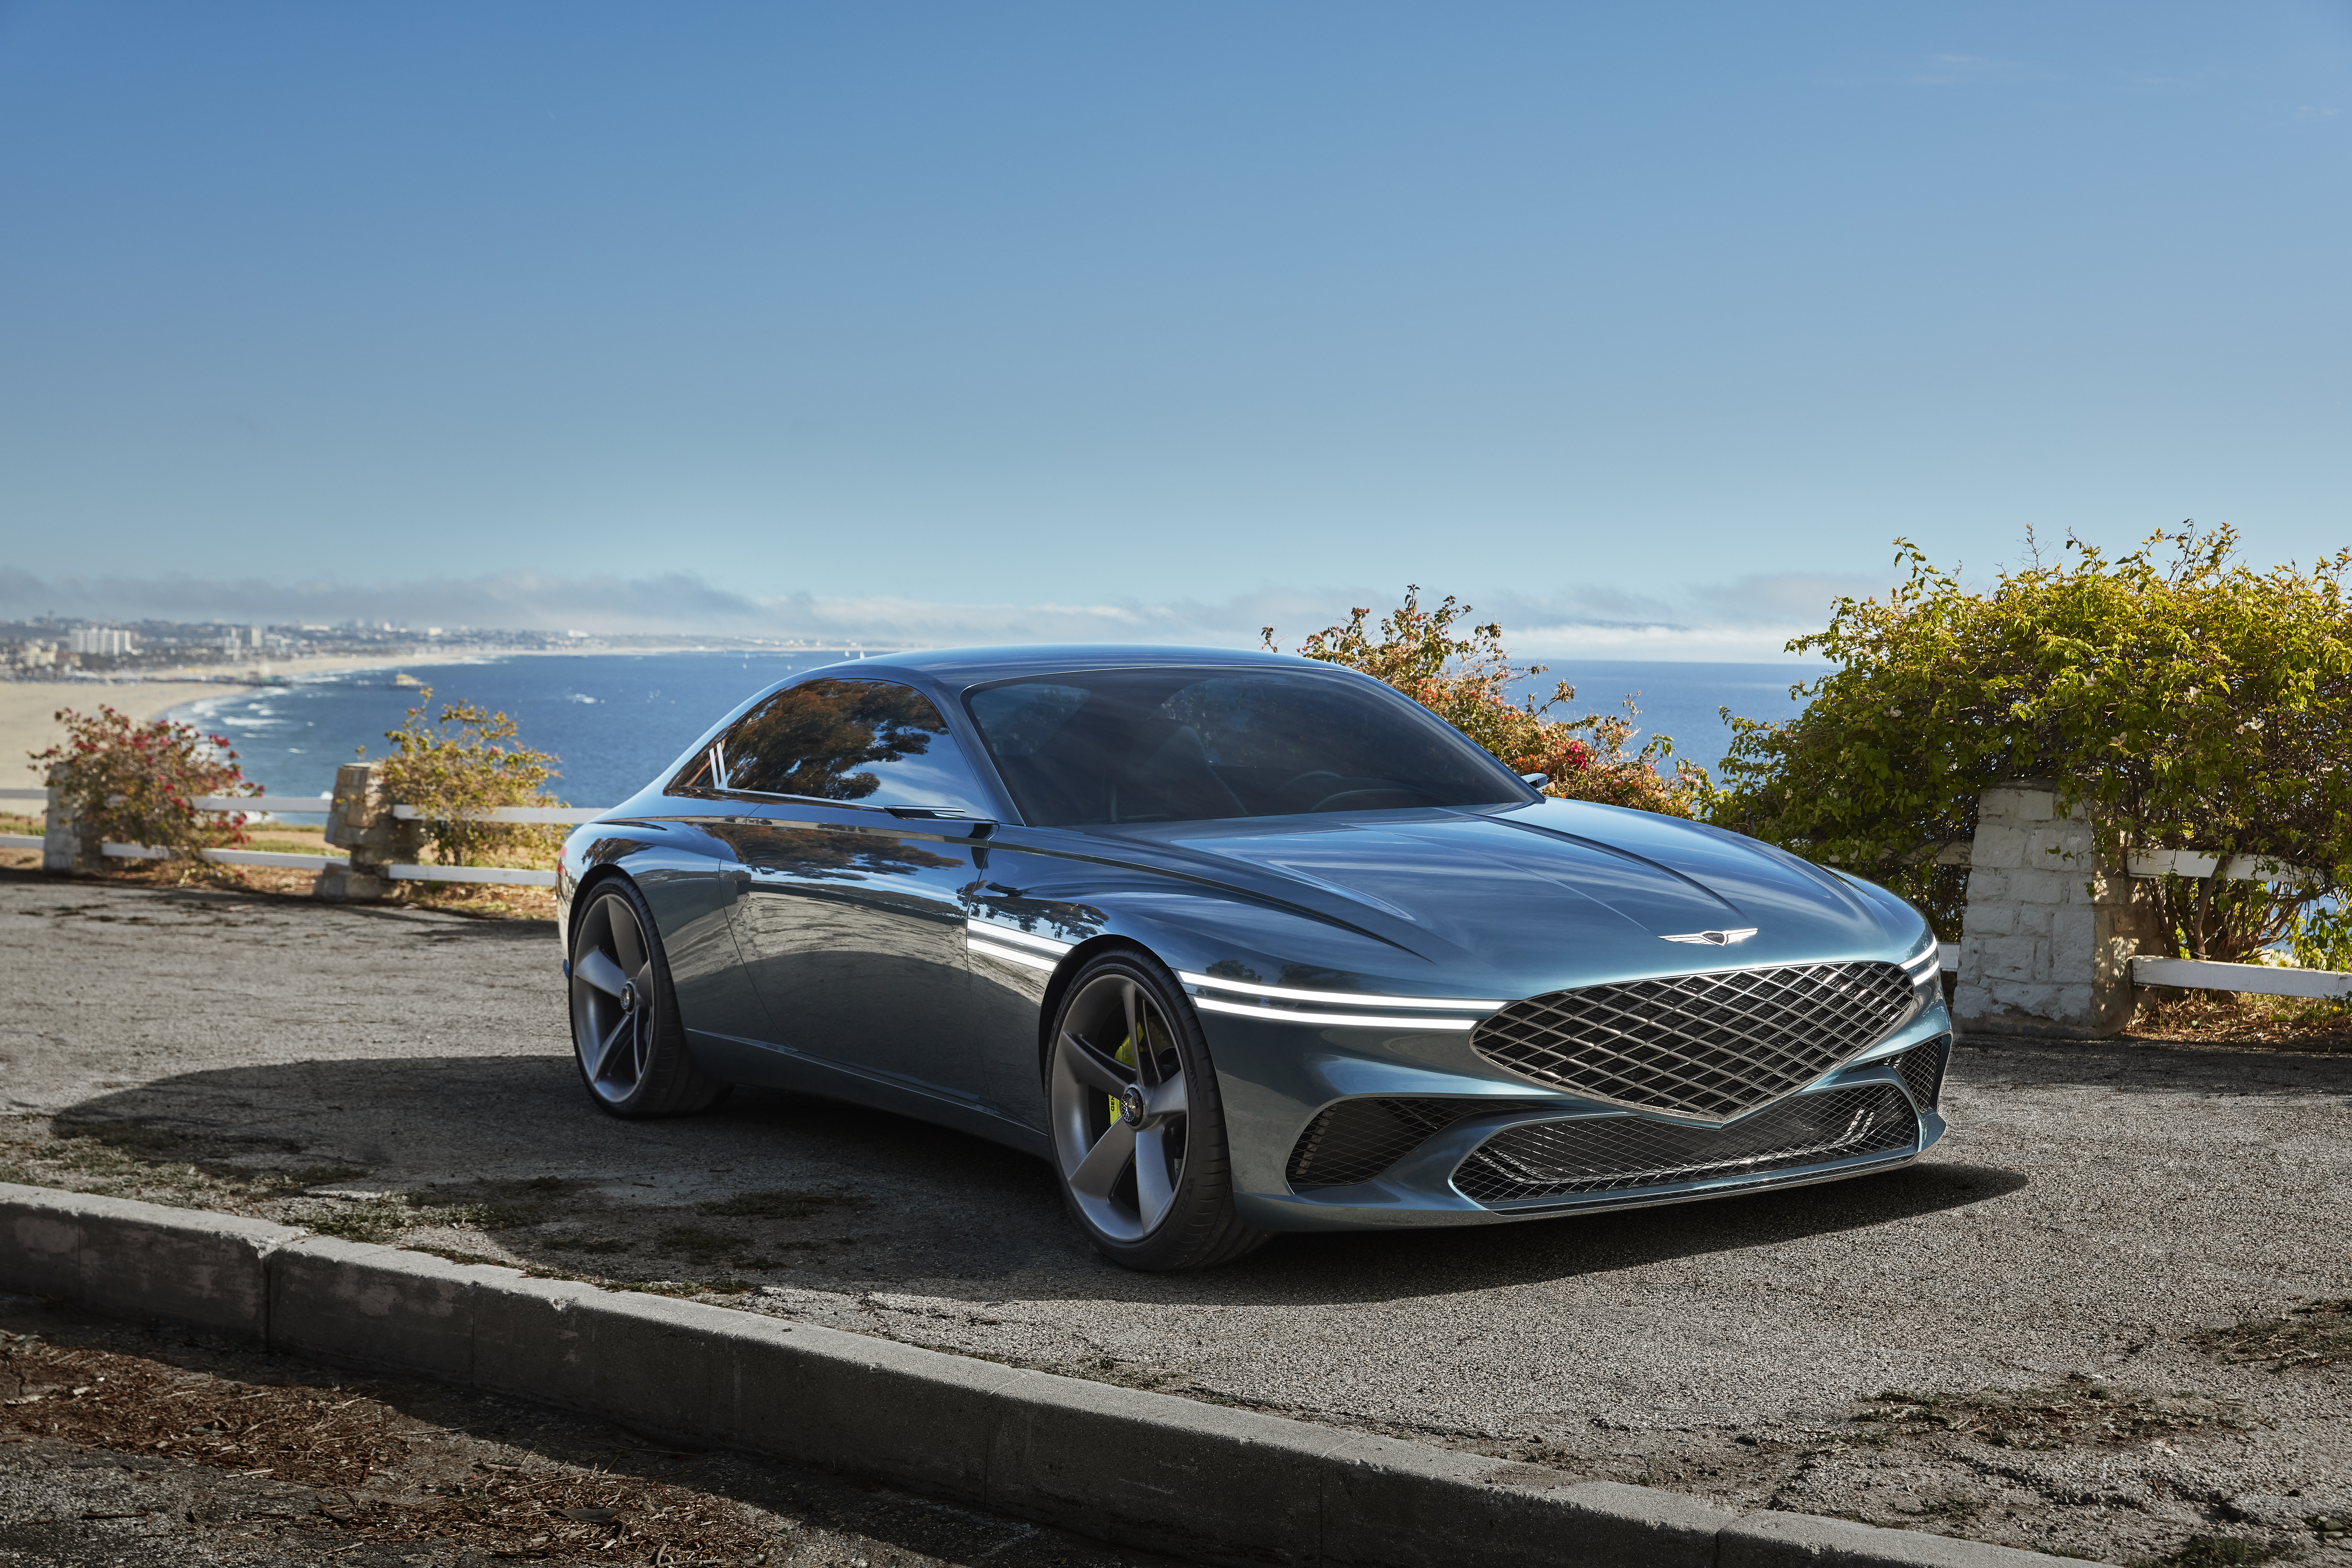 The Genesis X Concept's color is inspired by the lagoons of Brazil